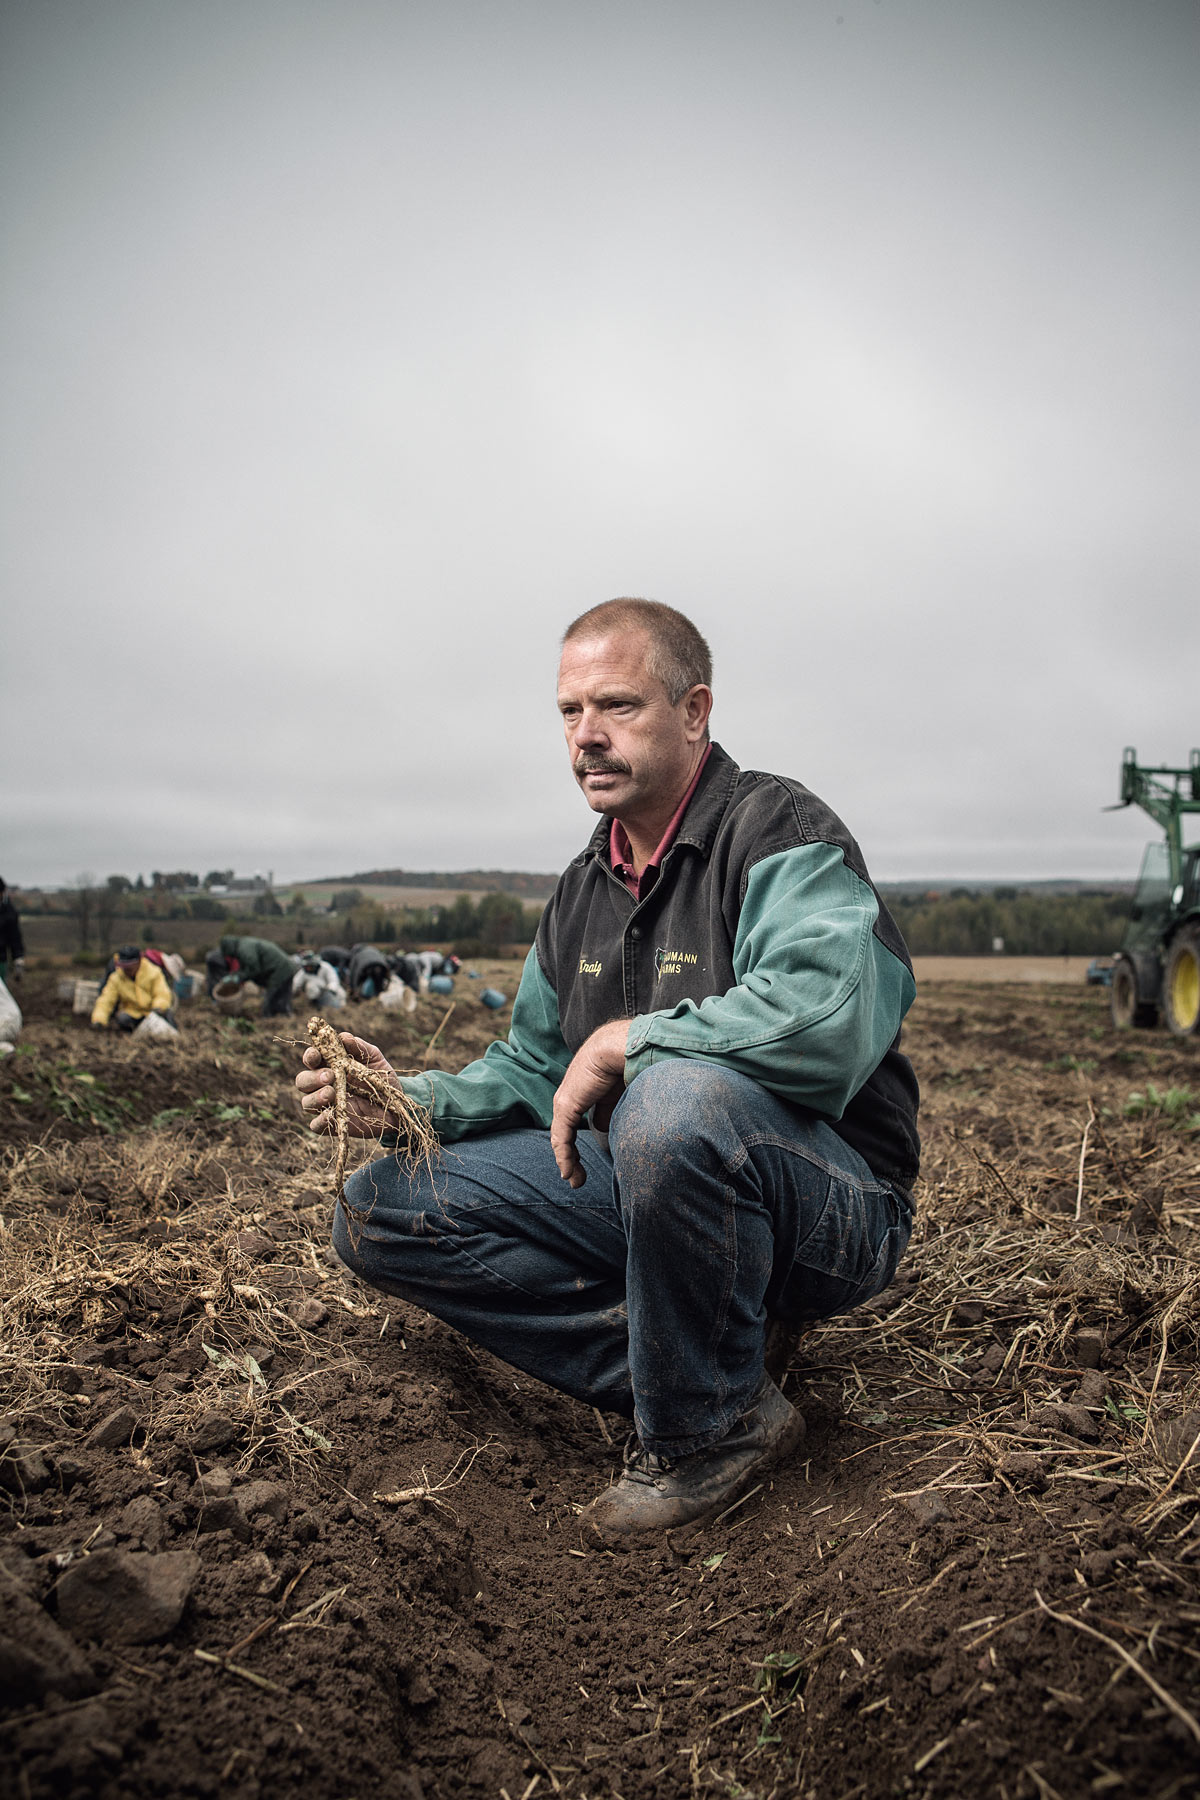 baumann_farms_wausau_wisconsin_ginseng_farmin_commercial_photography_advertising_portrait_midwest_photographer_59